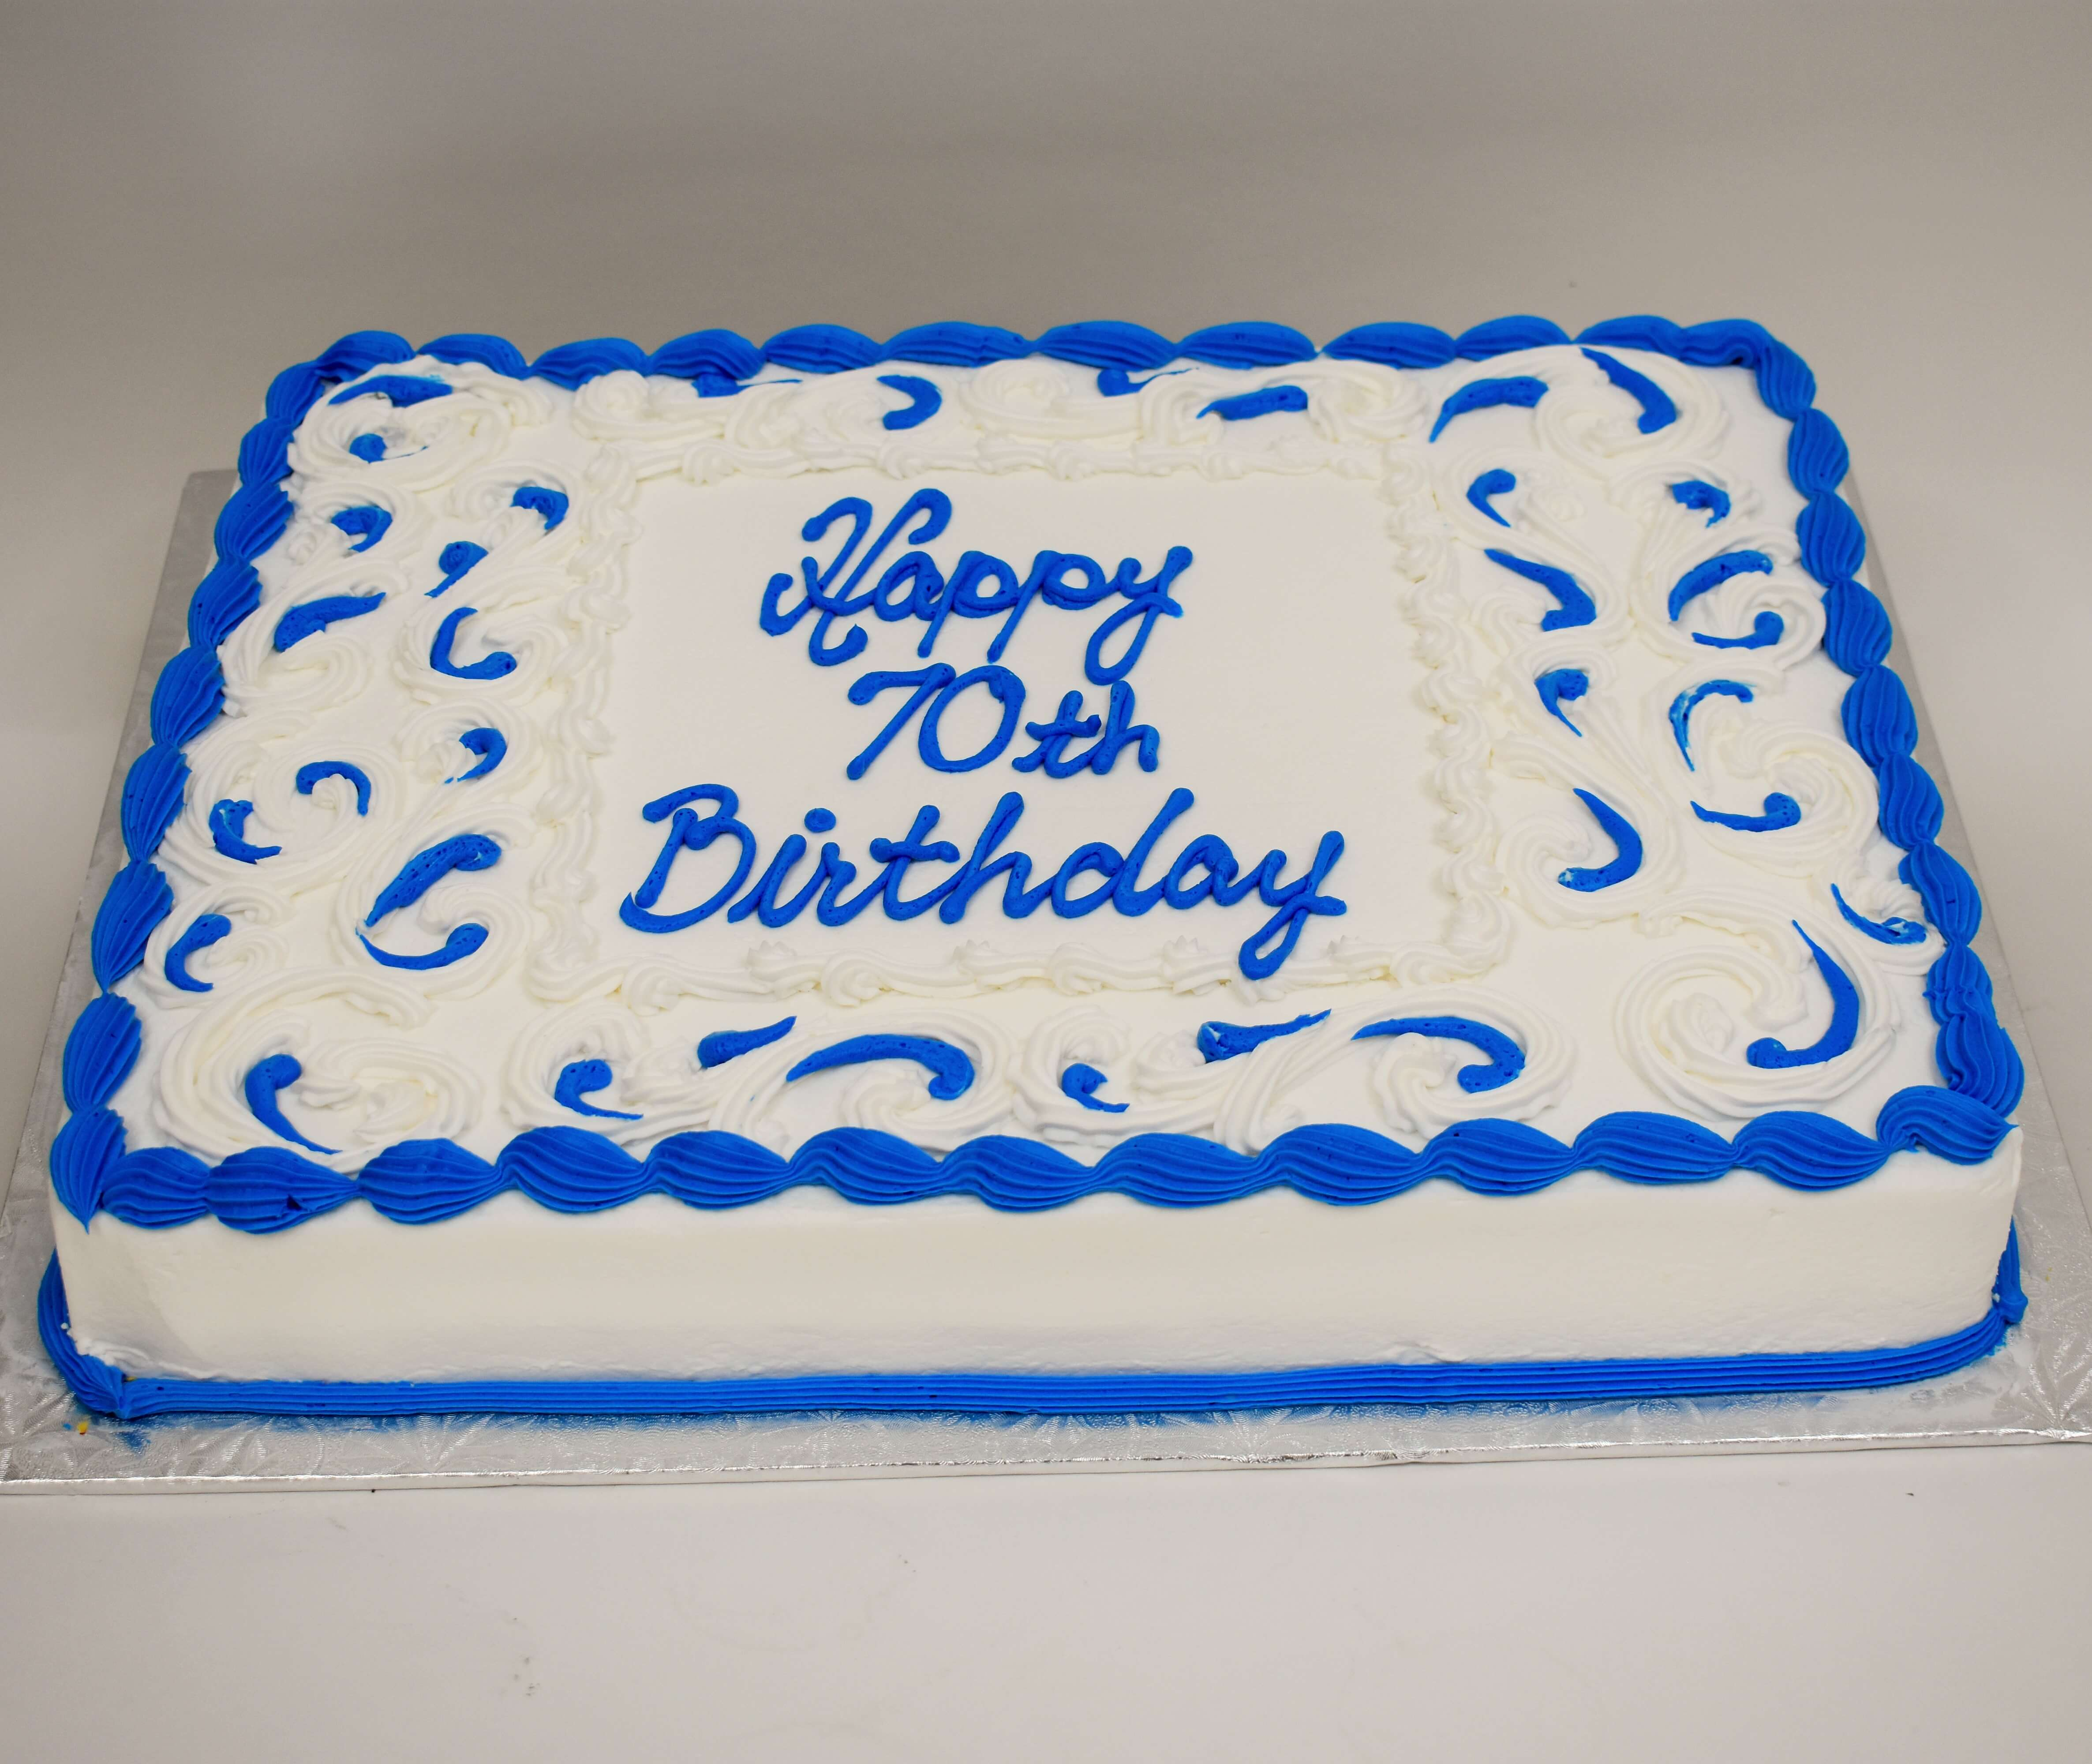 MaArthur's Bakery Custom Cake with Blue and White Icing Scrolling